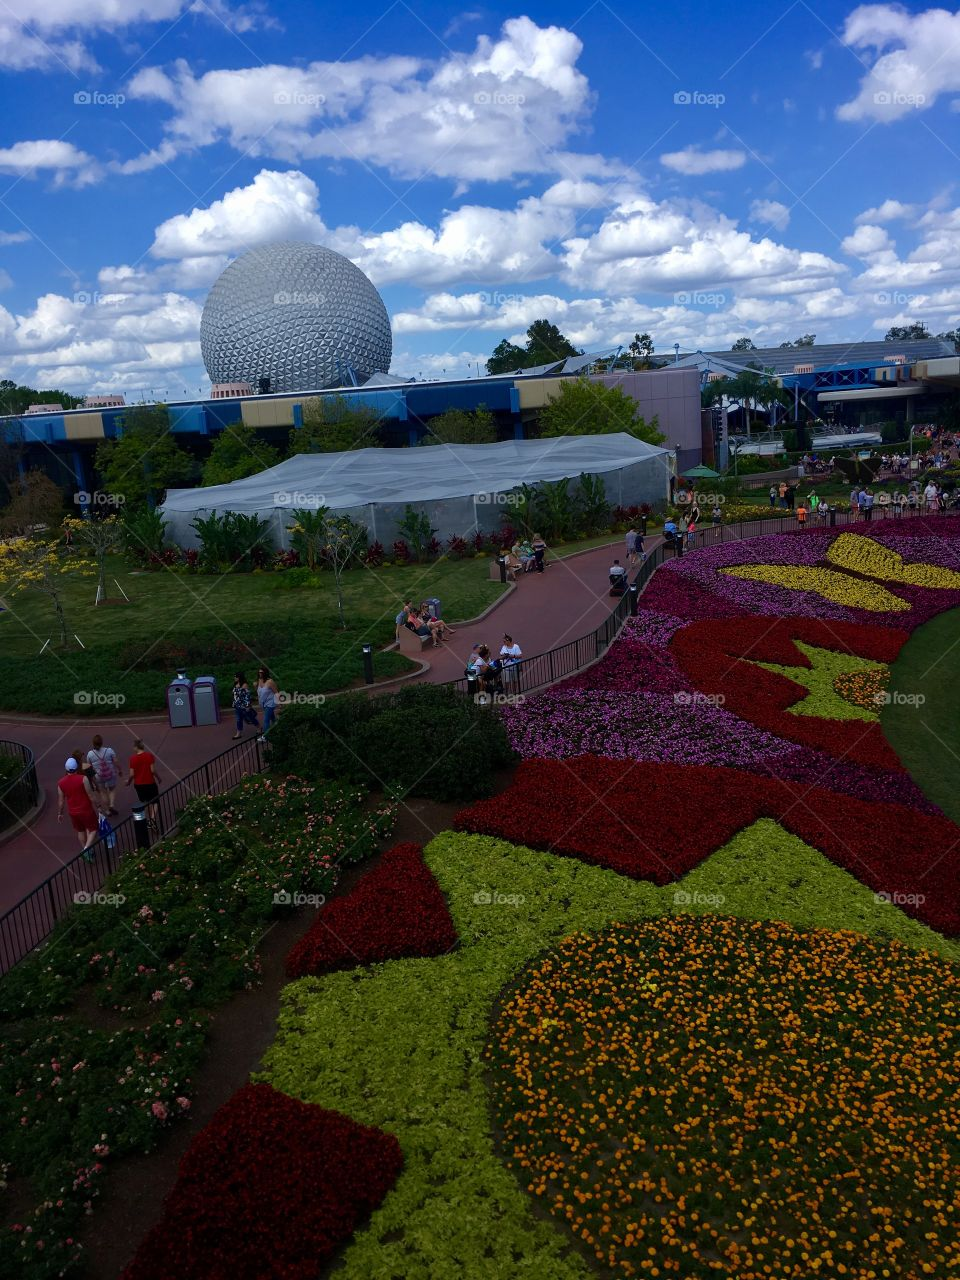 View of Epcot from the monorail during the flower and garden festival.